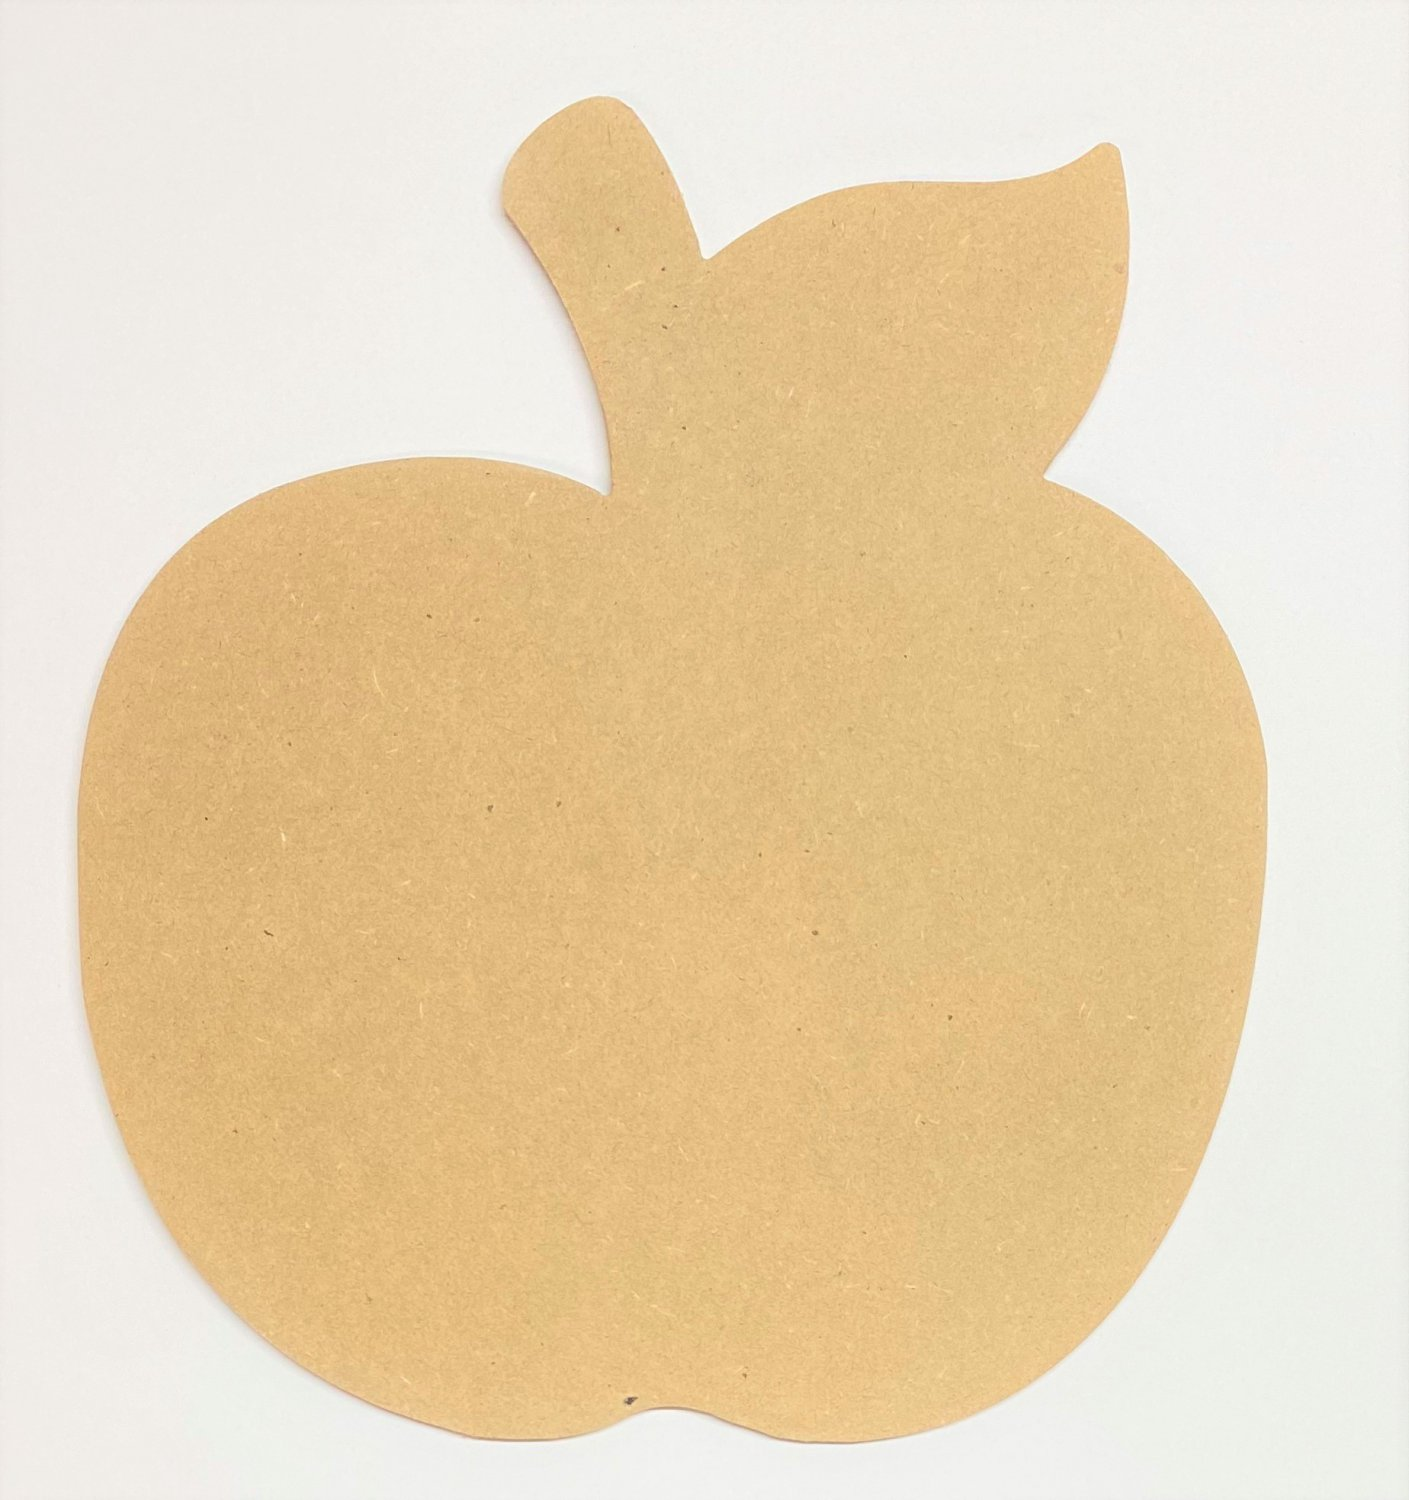 """18"""" - Apple - 1/4""""Thick MDF Cut Out Made in the USA"""